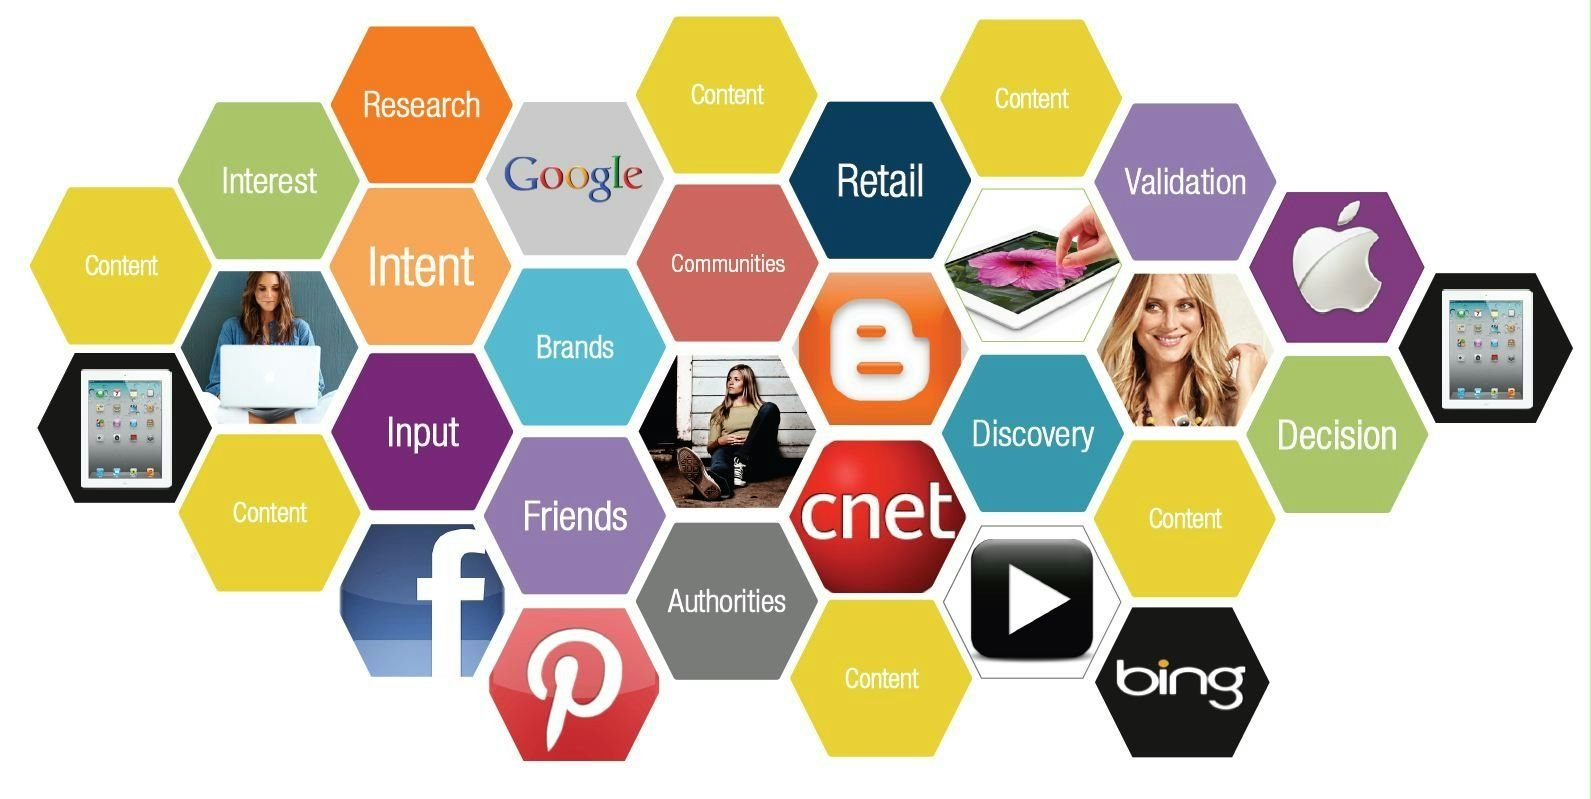 How To Make An Internet Based Marketing Business